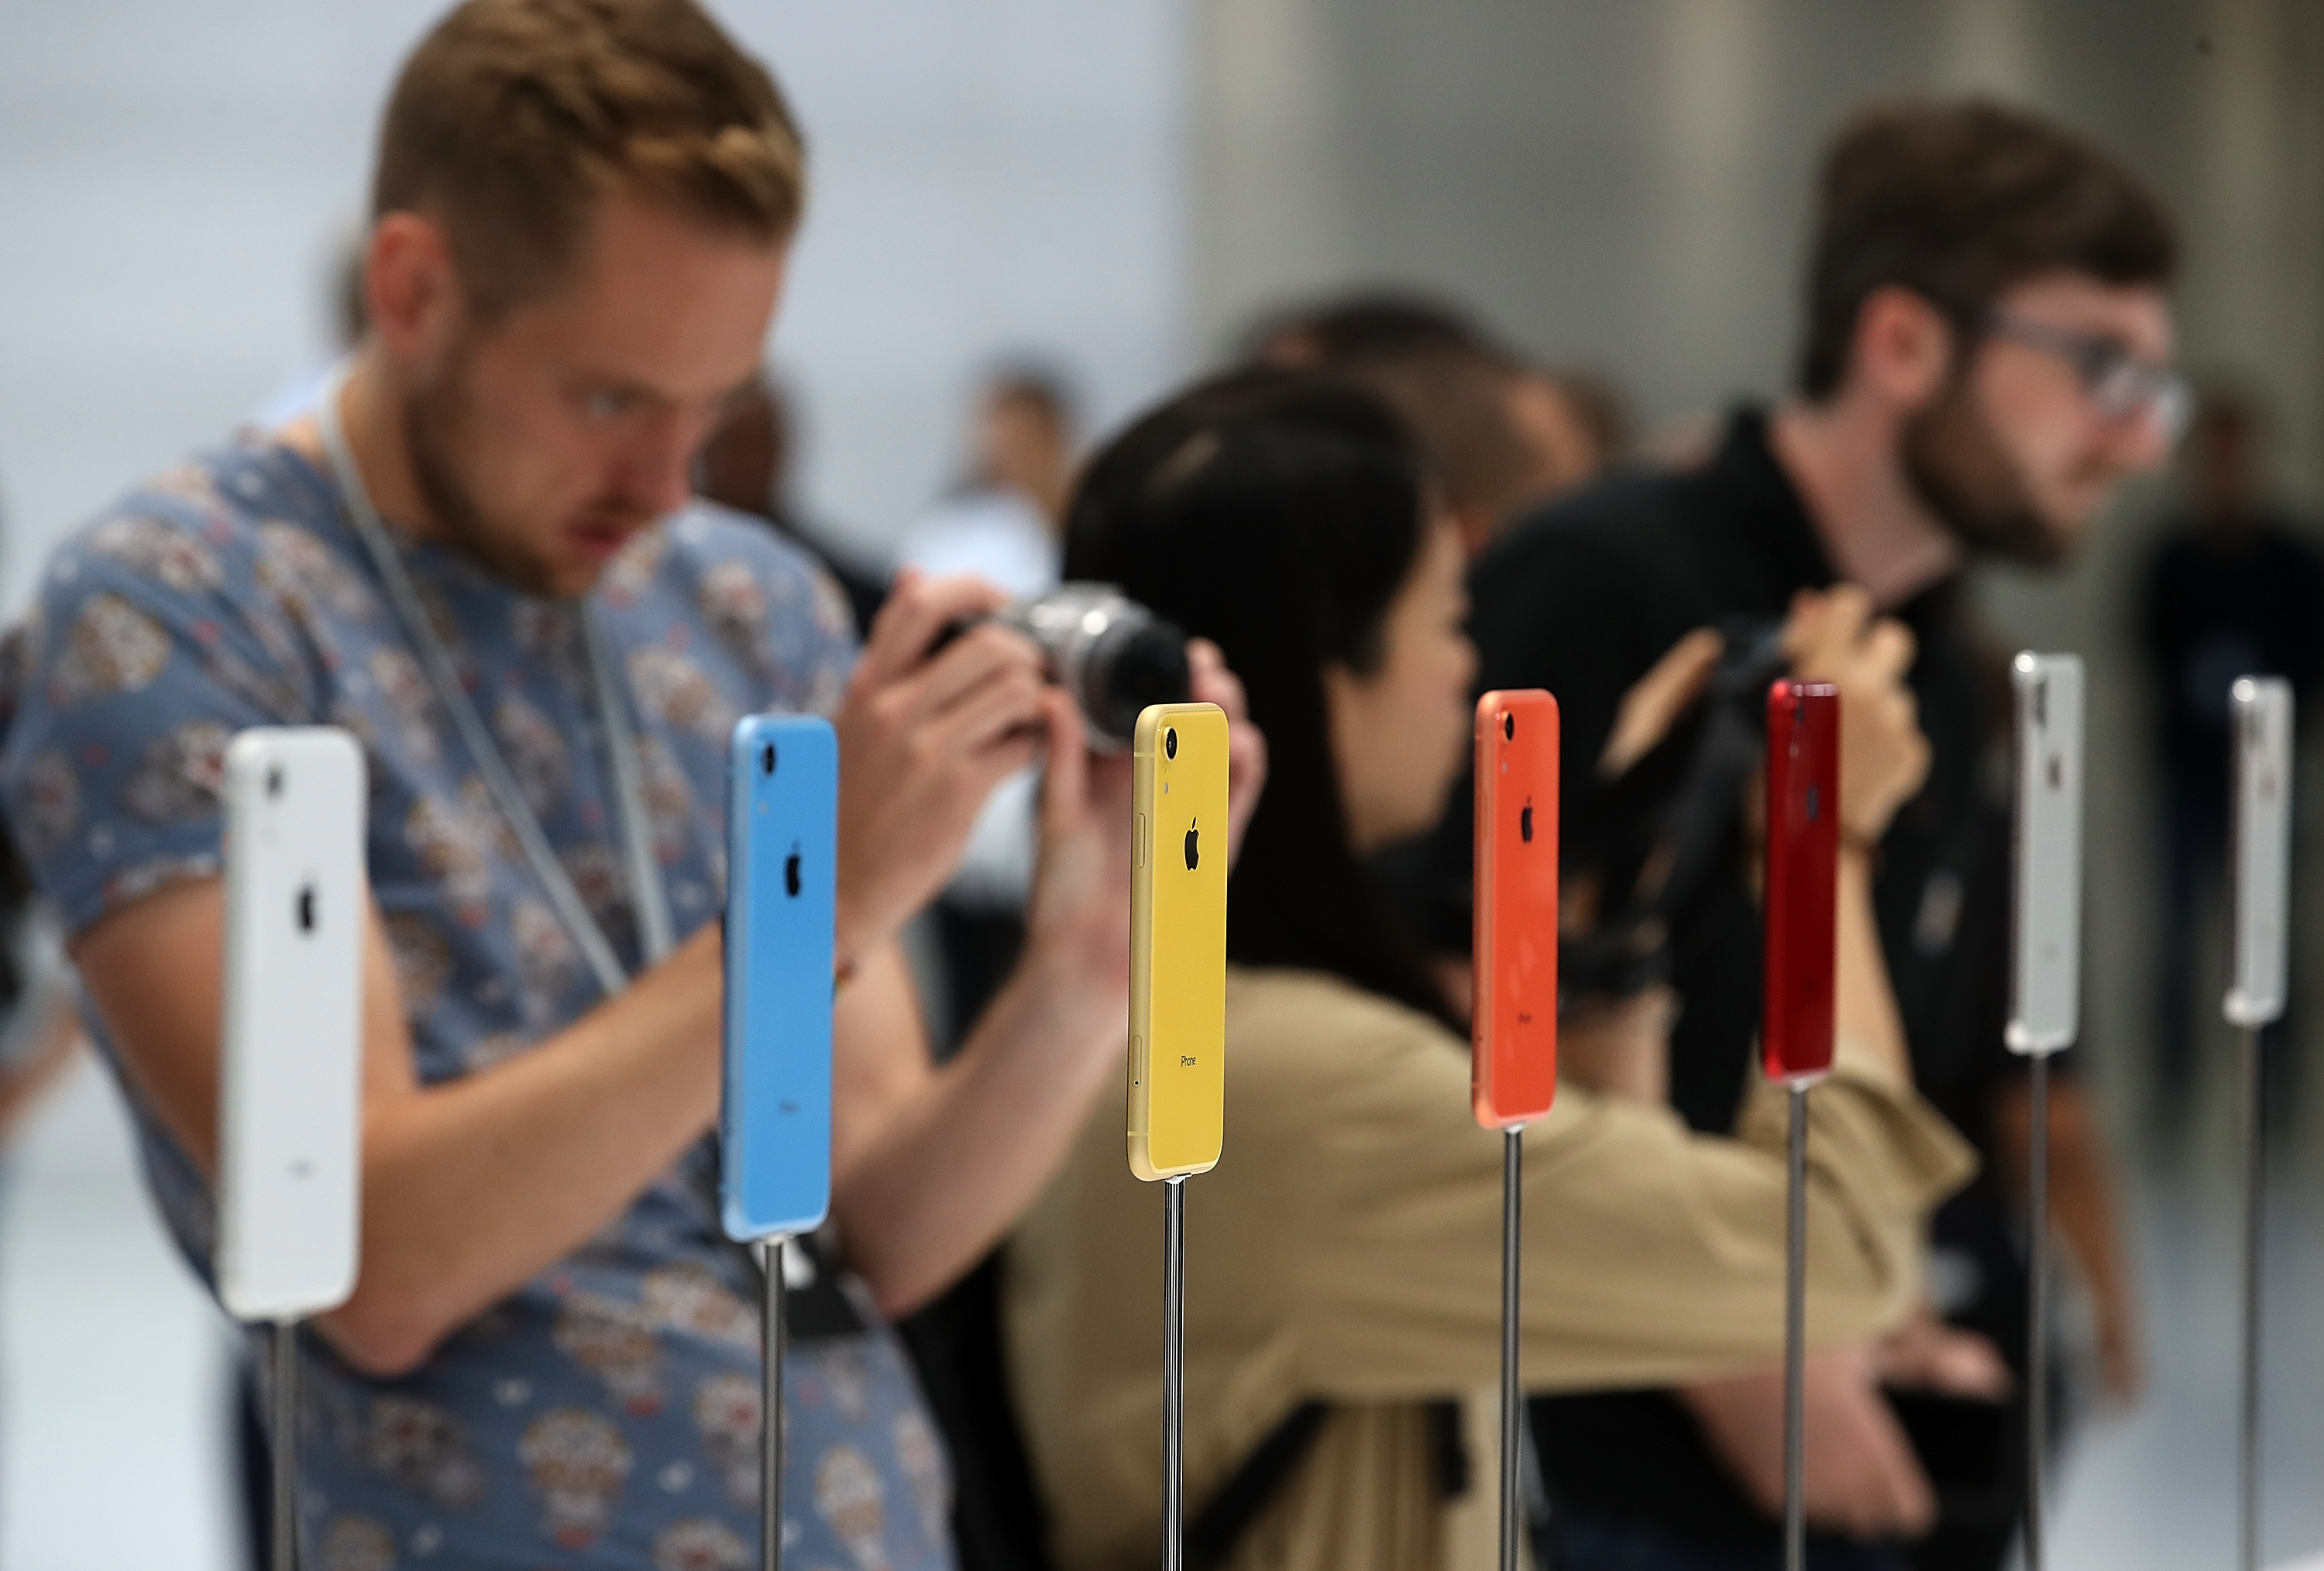 Cupertino, CA: Launch of a new Apple iPhone products on September 12, 1010. (Photo: Justin Sullivan / Getty Images)